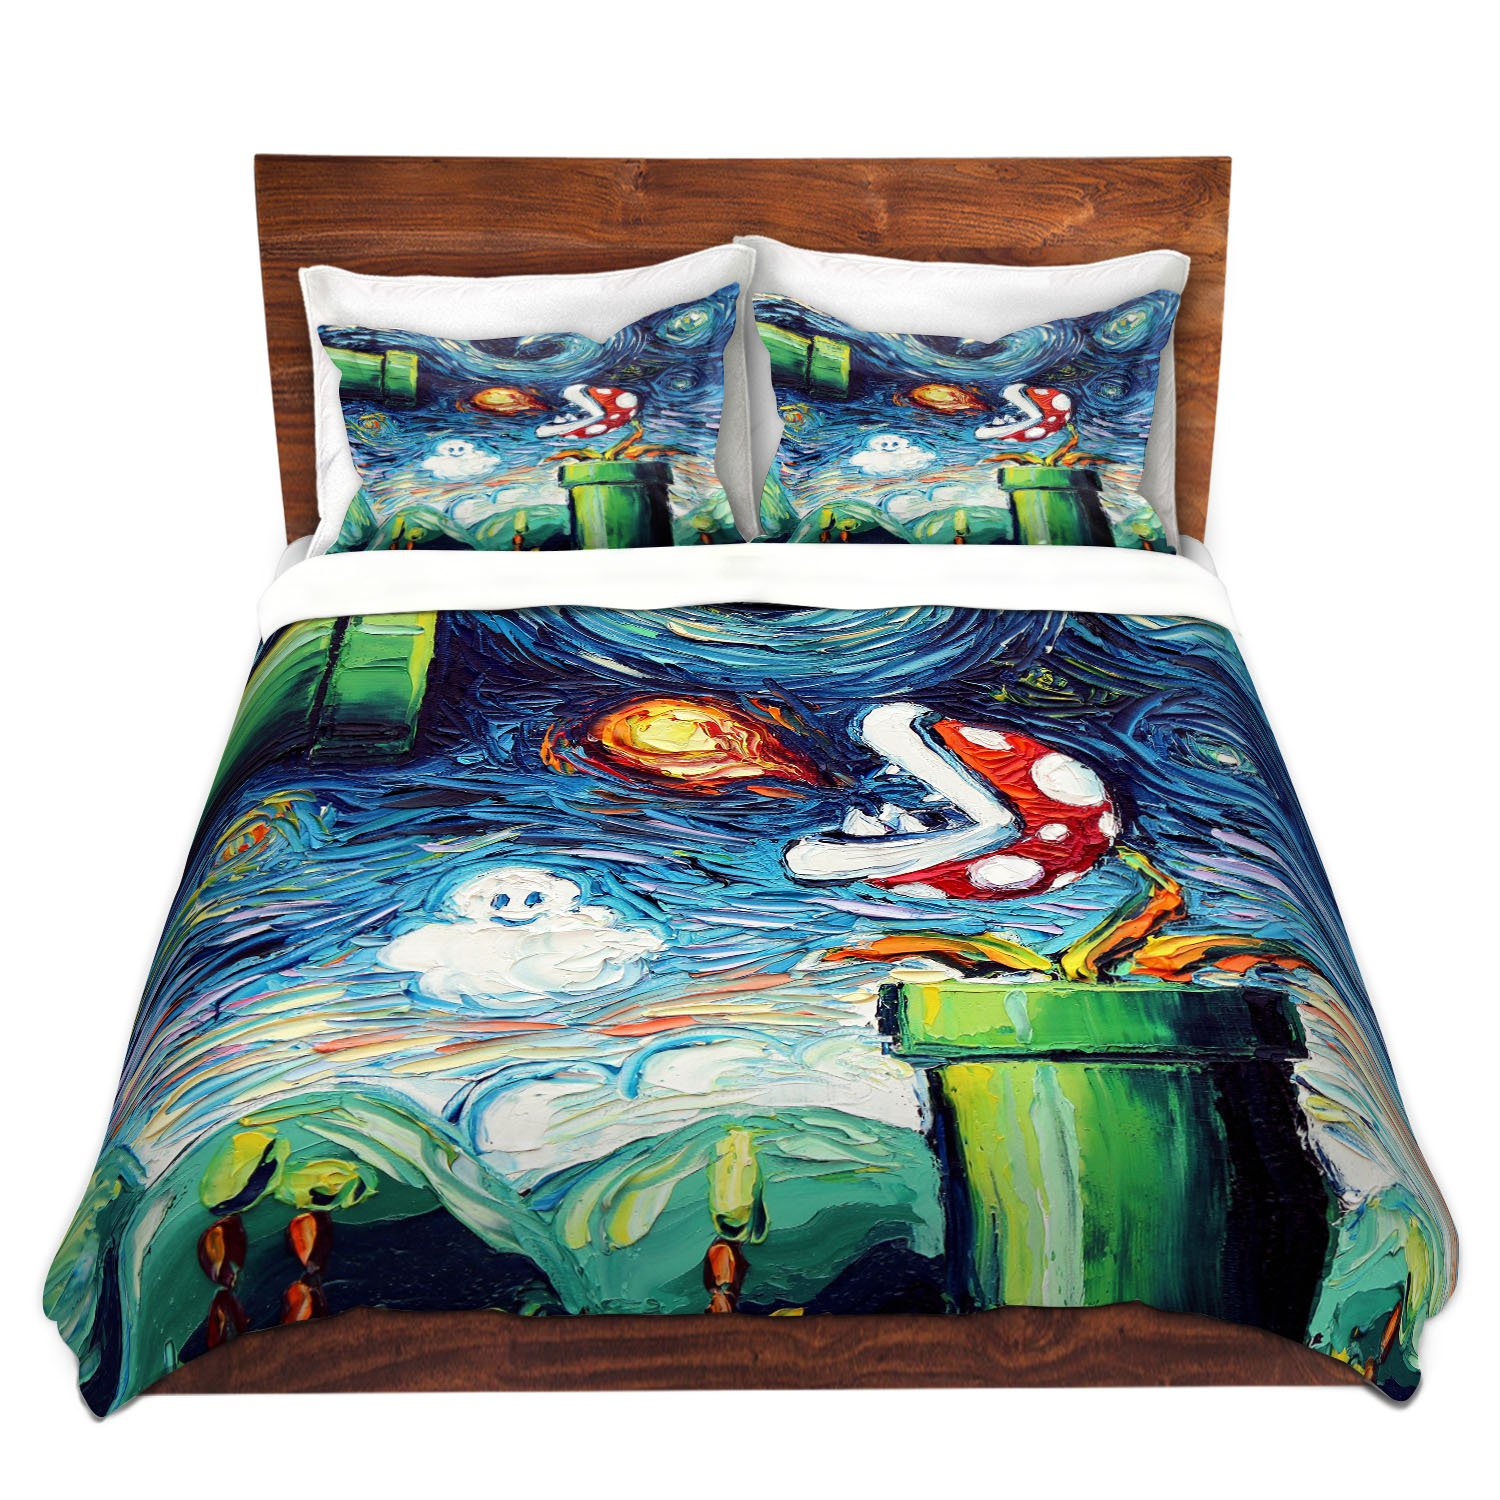 Duvet Cover Brushed Twill Twin, Queen, King SETs DiaNoche Designs Aja Ann - Van Gogh Super Mario Bros 2 by DiaNoche Designs